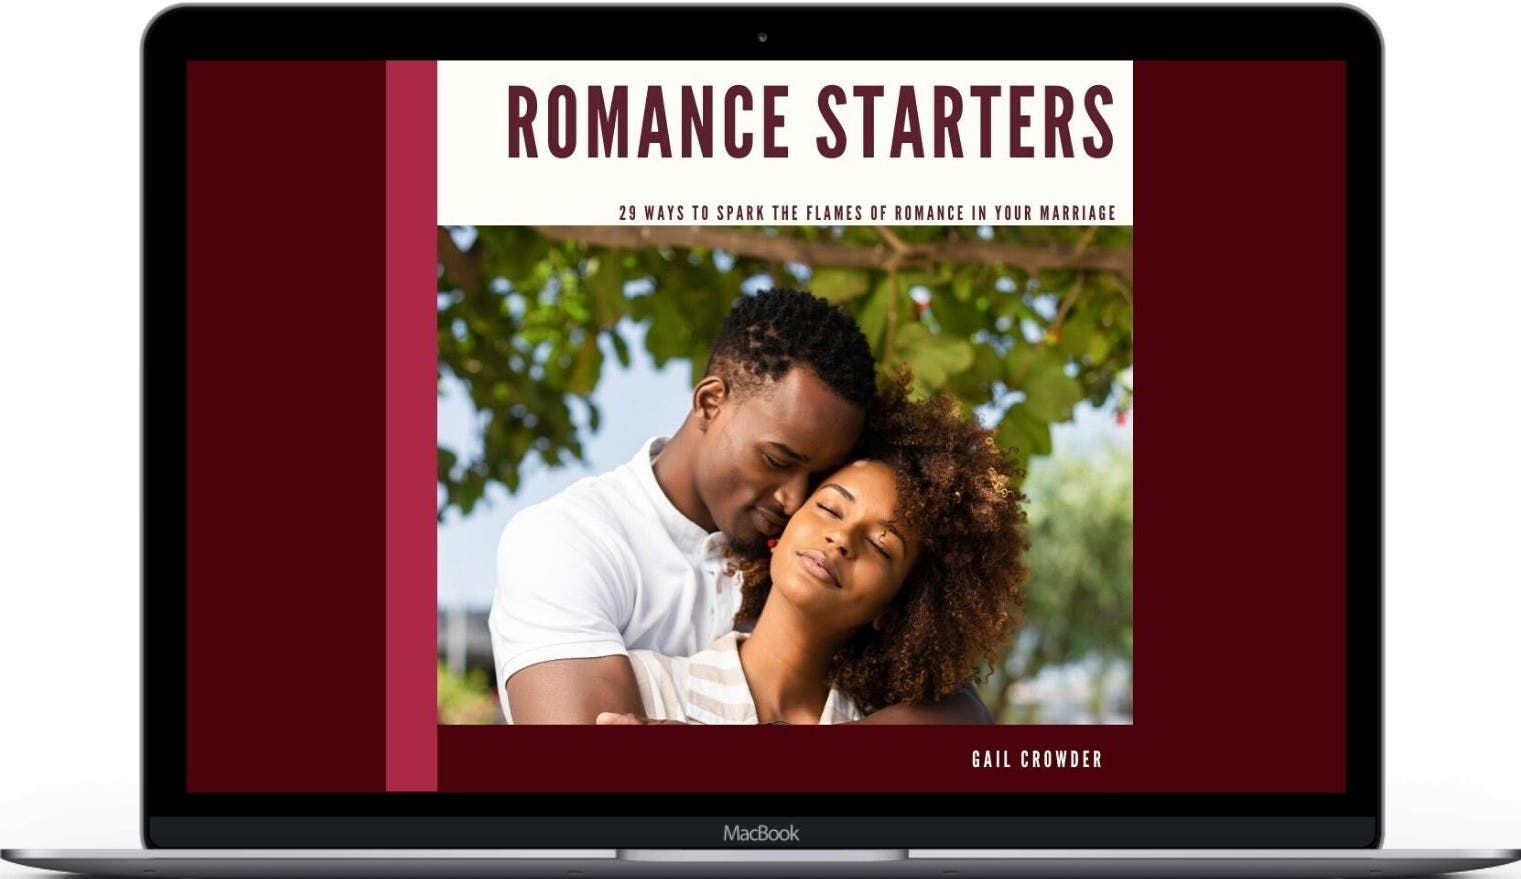 Romance Starters 29 Ways To Spark The Flames Of Romance In Your Marriage Ebook